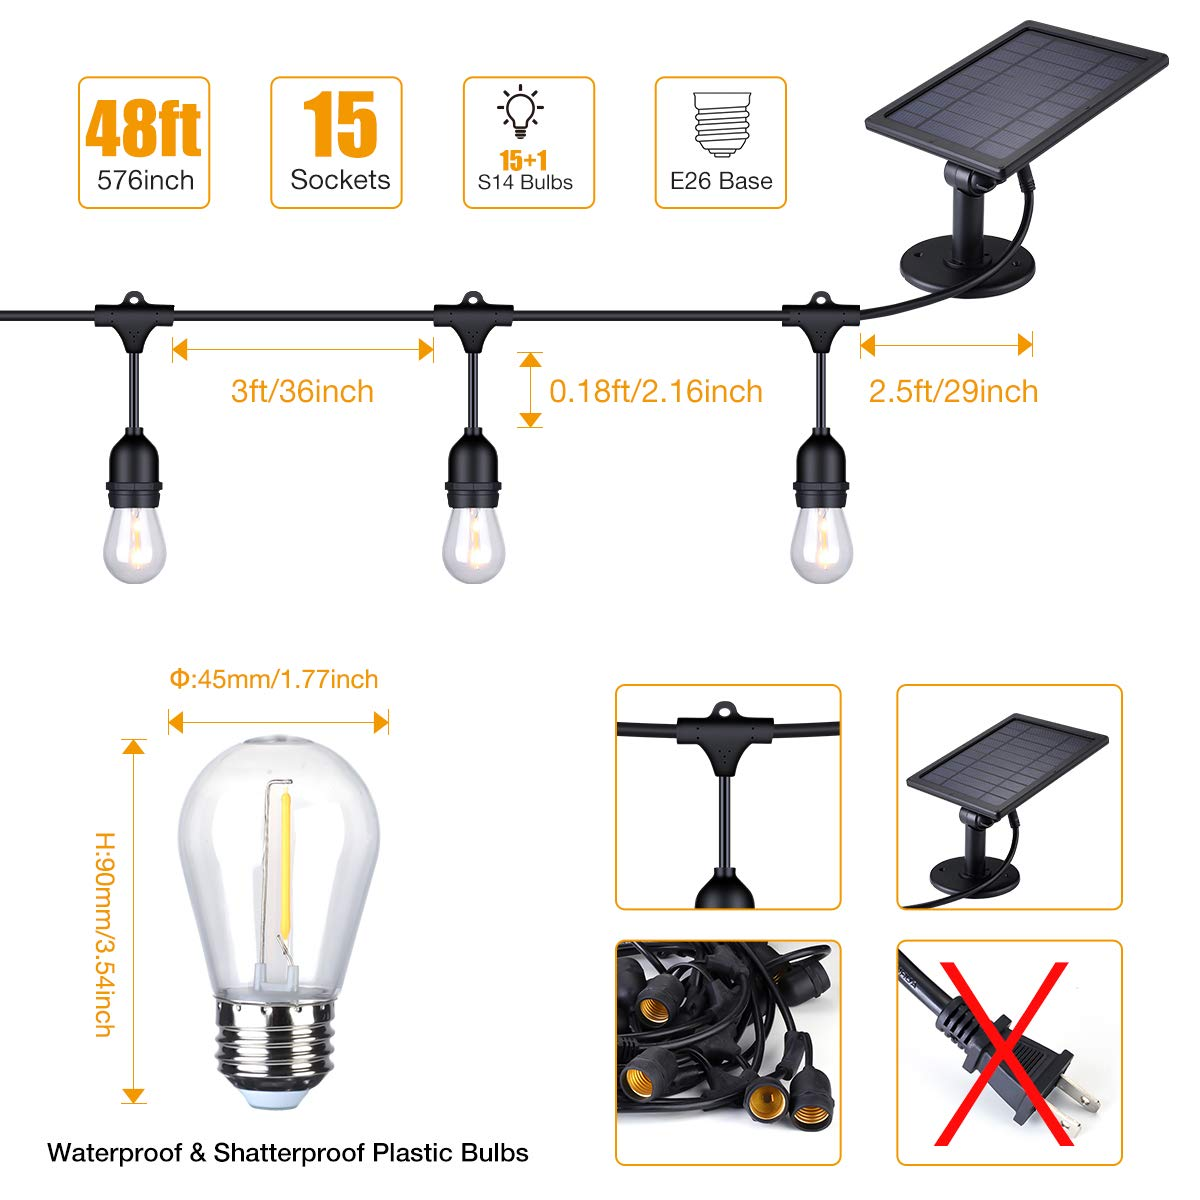 Foxlux Solar String Lights - 48FT LED Outdoor String Light - Shatterproof, Waterproof Pergola Lights - 15 Hanging Sockets, Light Sensor, S14 Edison Bulbs - Ambience for Patio, Backyard, Garden, Bistro by FOXLUX (Image #5)